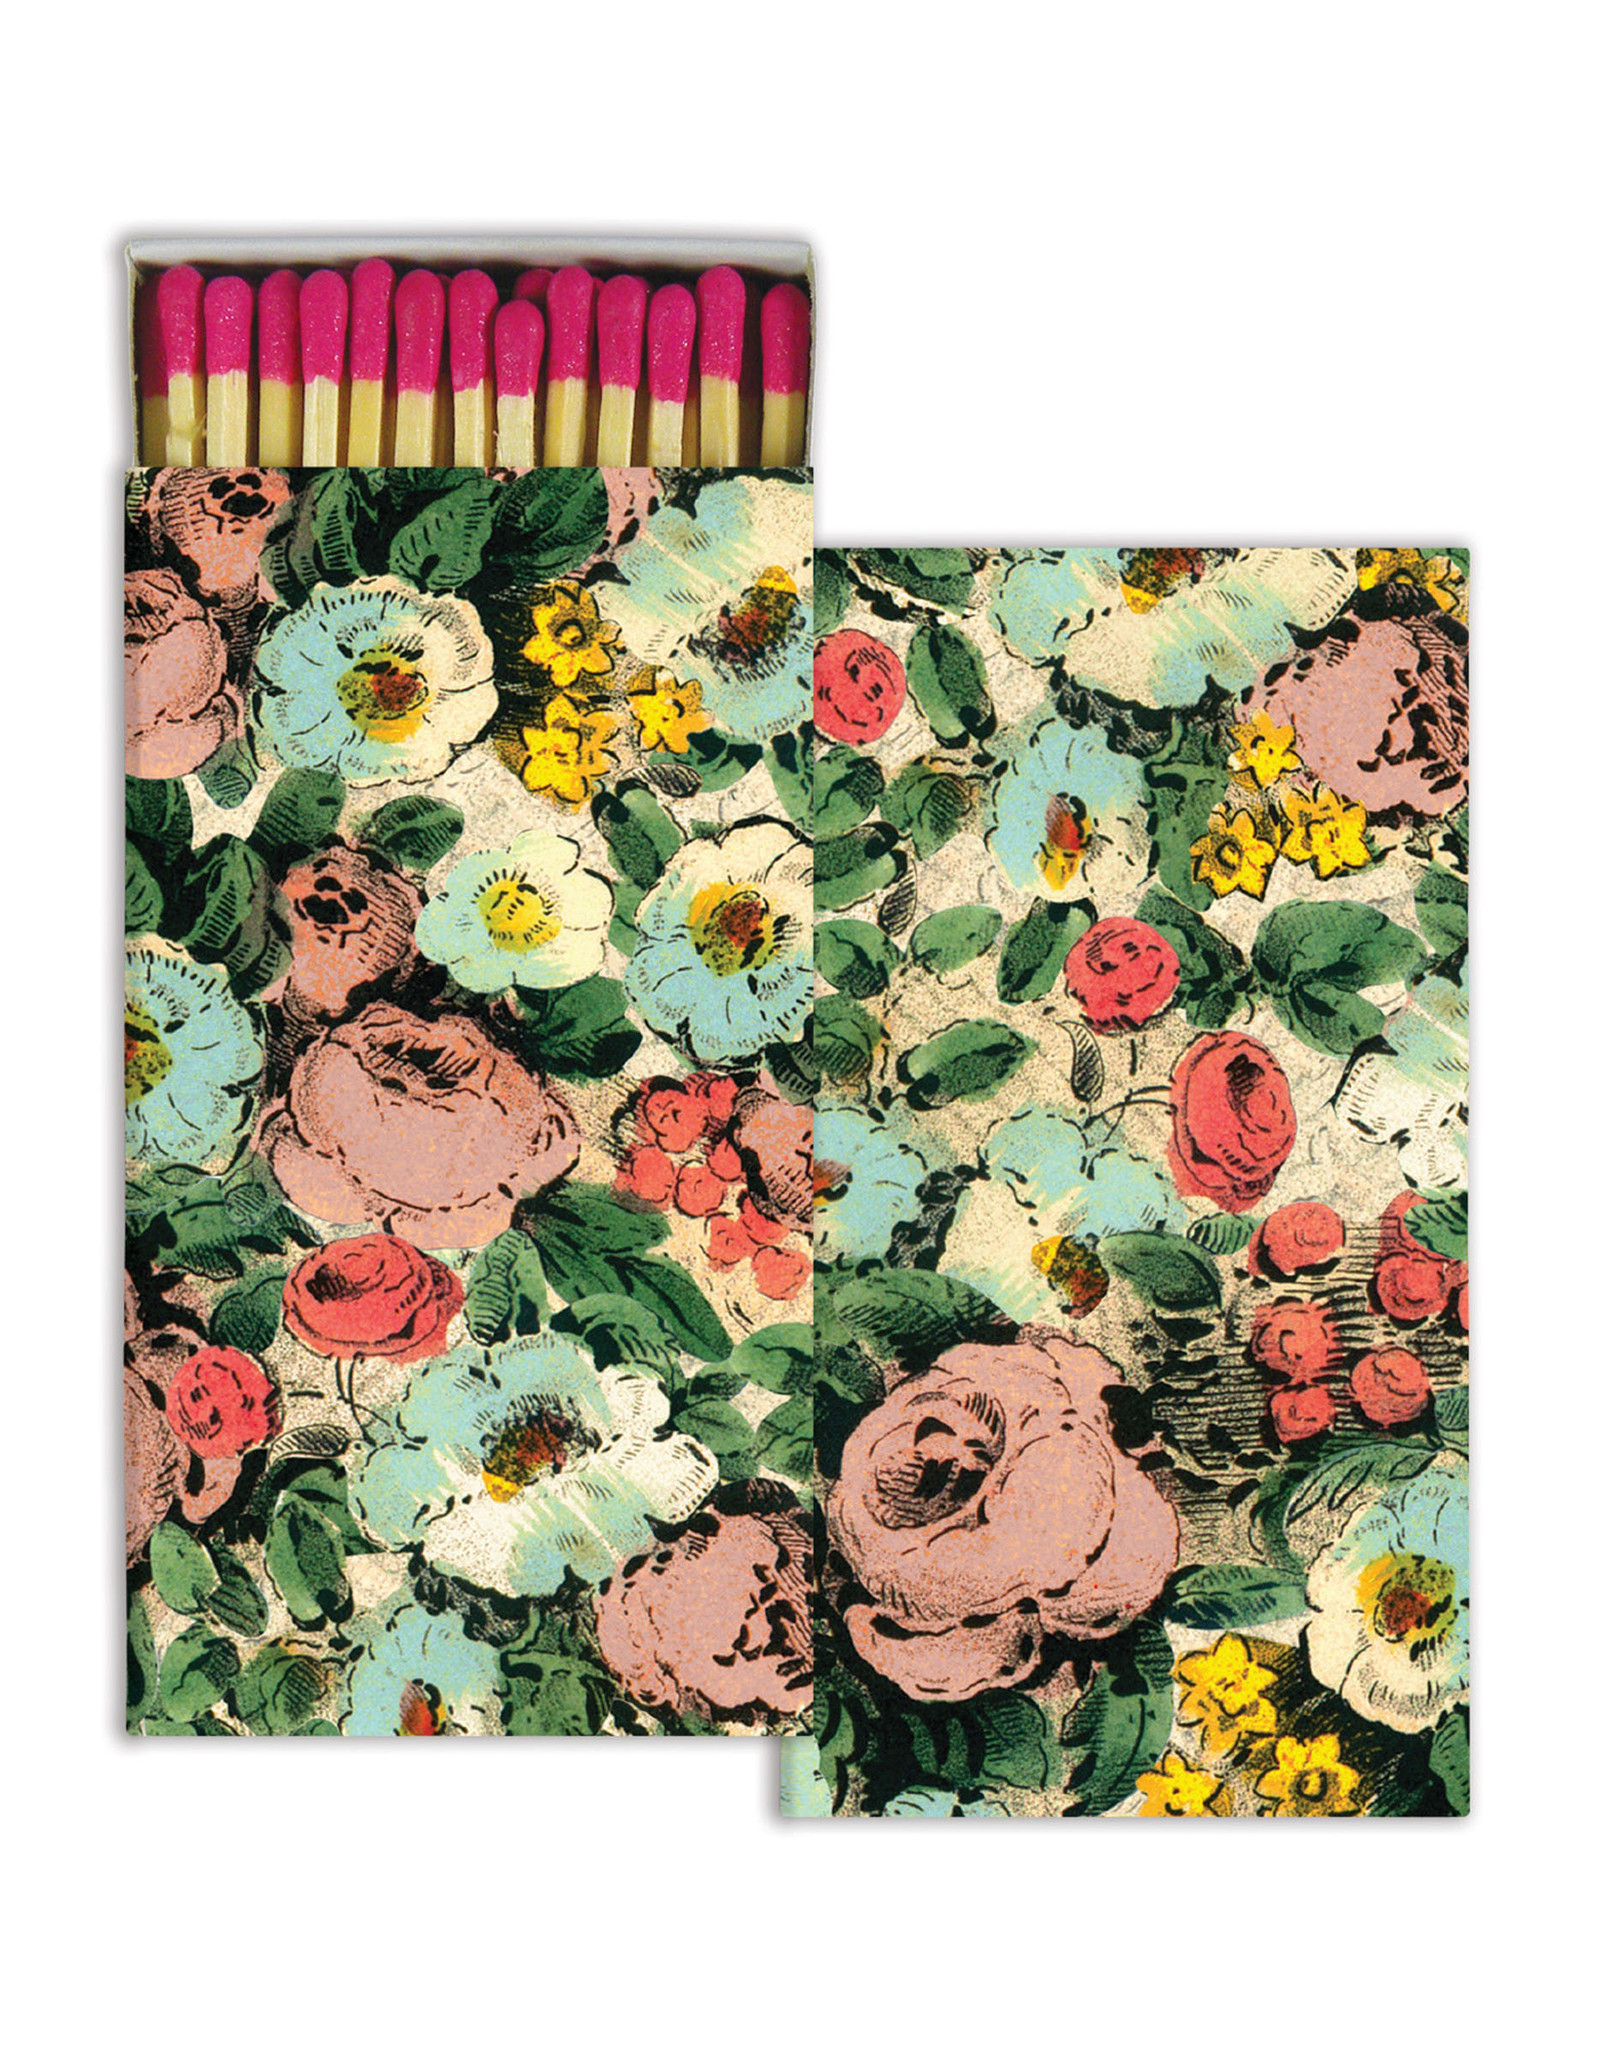 Matches - Floral Collage